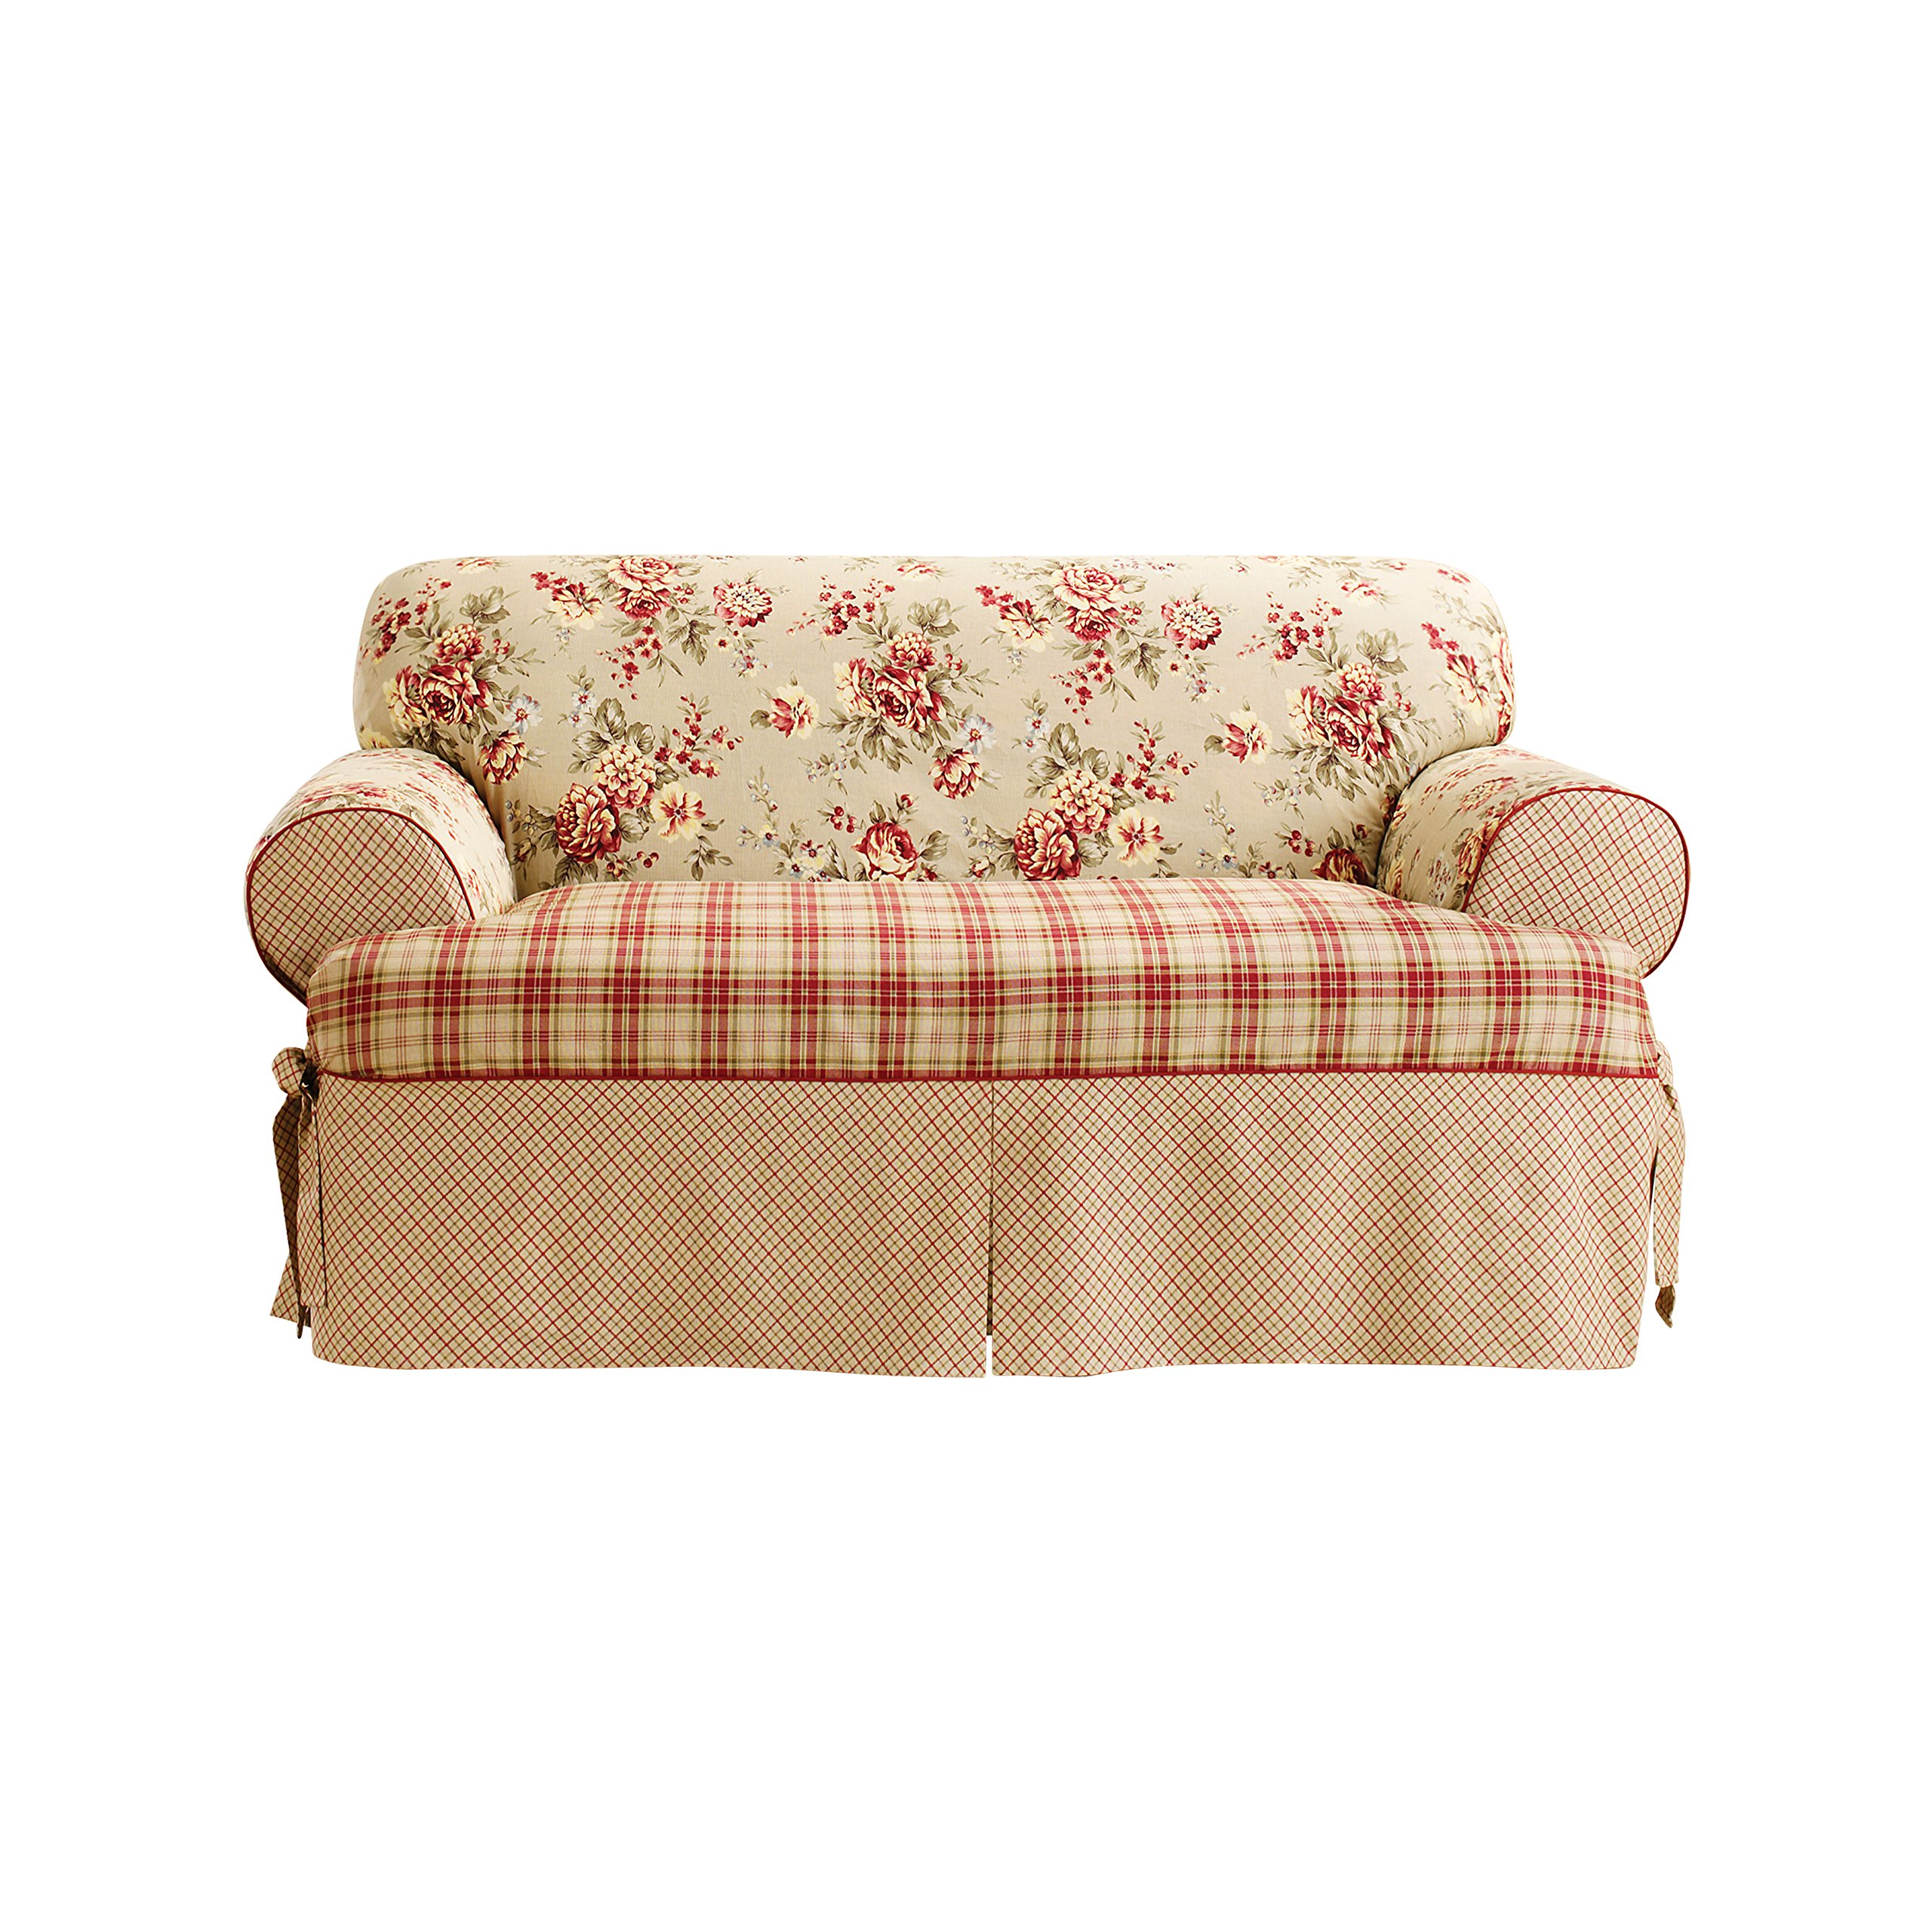 Sure Fit SF37490 Lexington Relaxed Fit 1 Piece Box Cushion Loveseat Slipcover, Multi